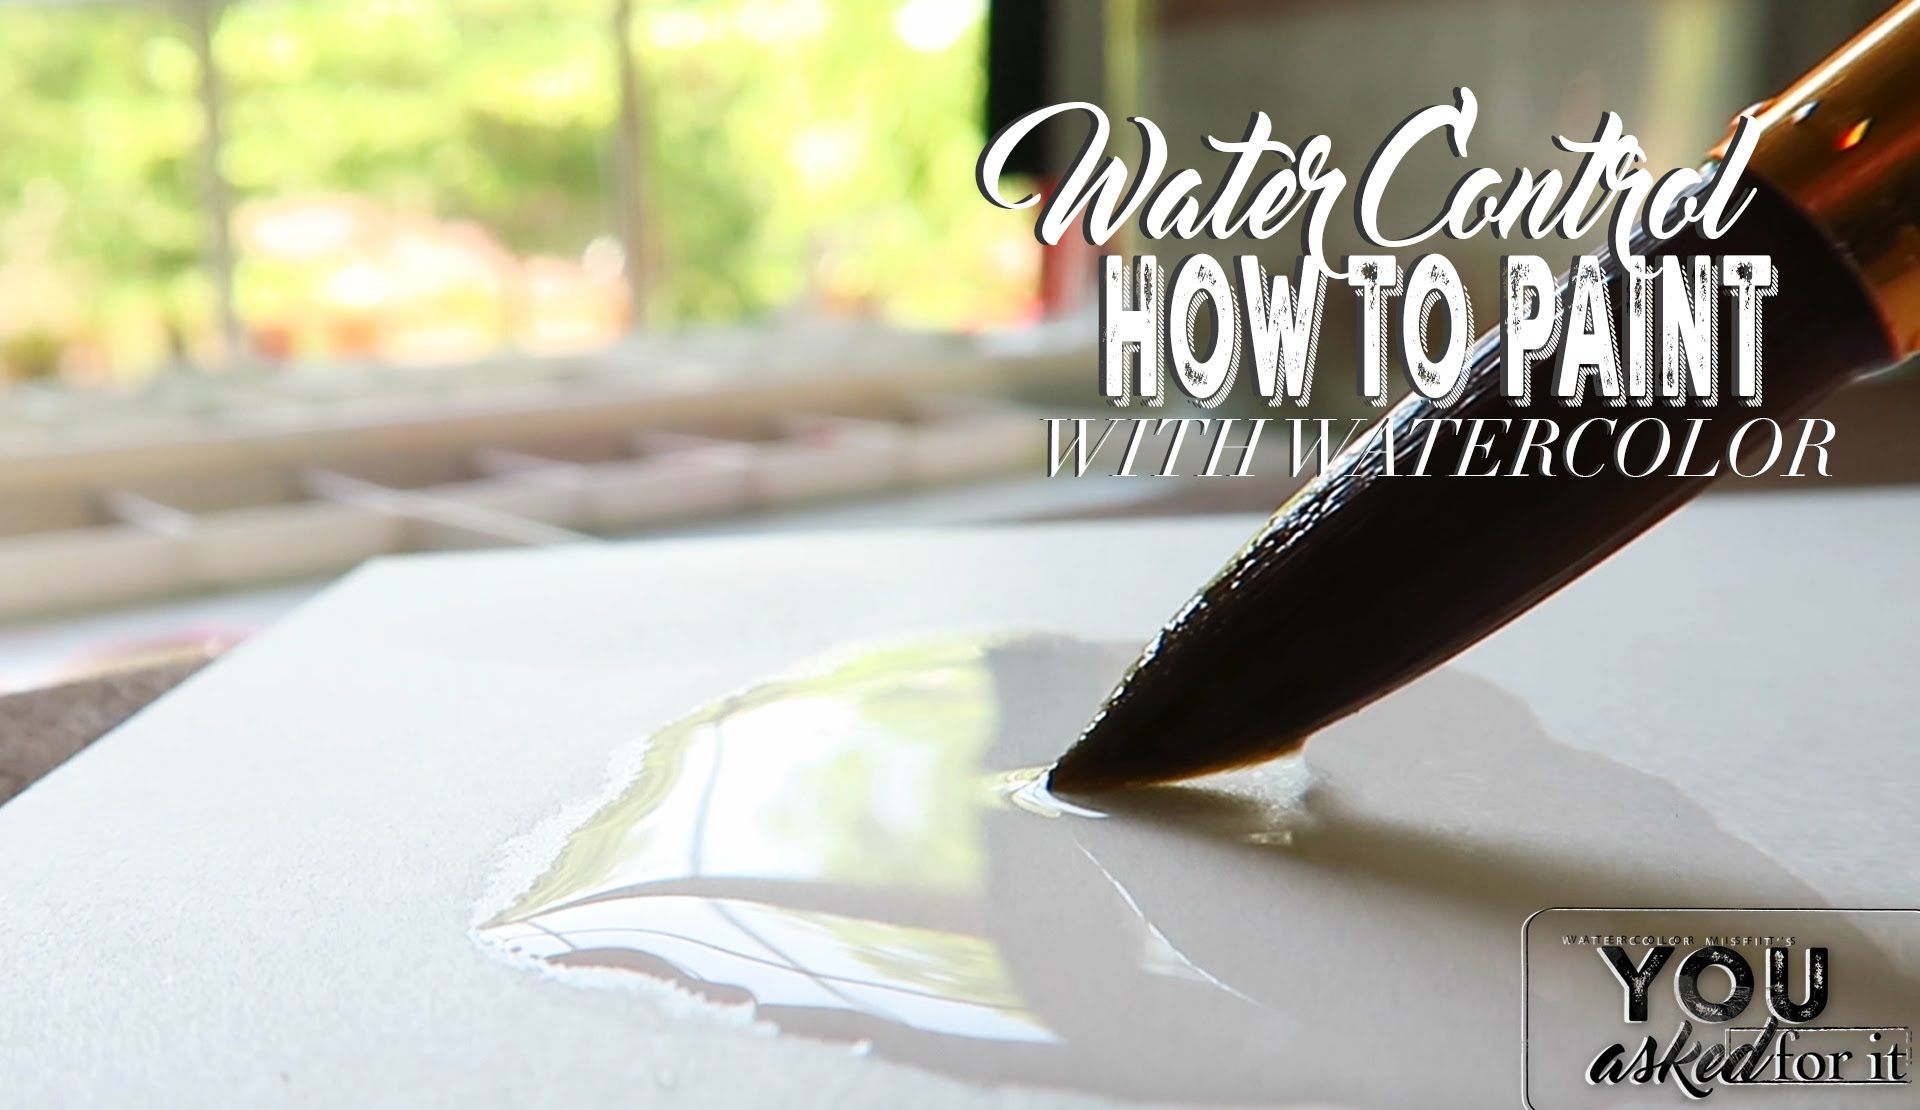 The Best Way to Control Watercolor? - Your Questions Answered